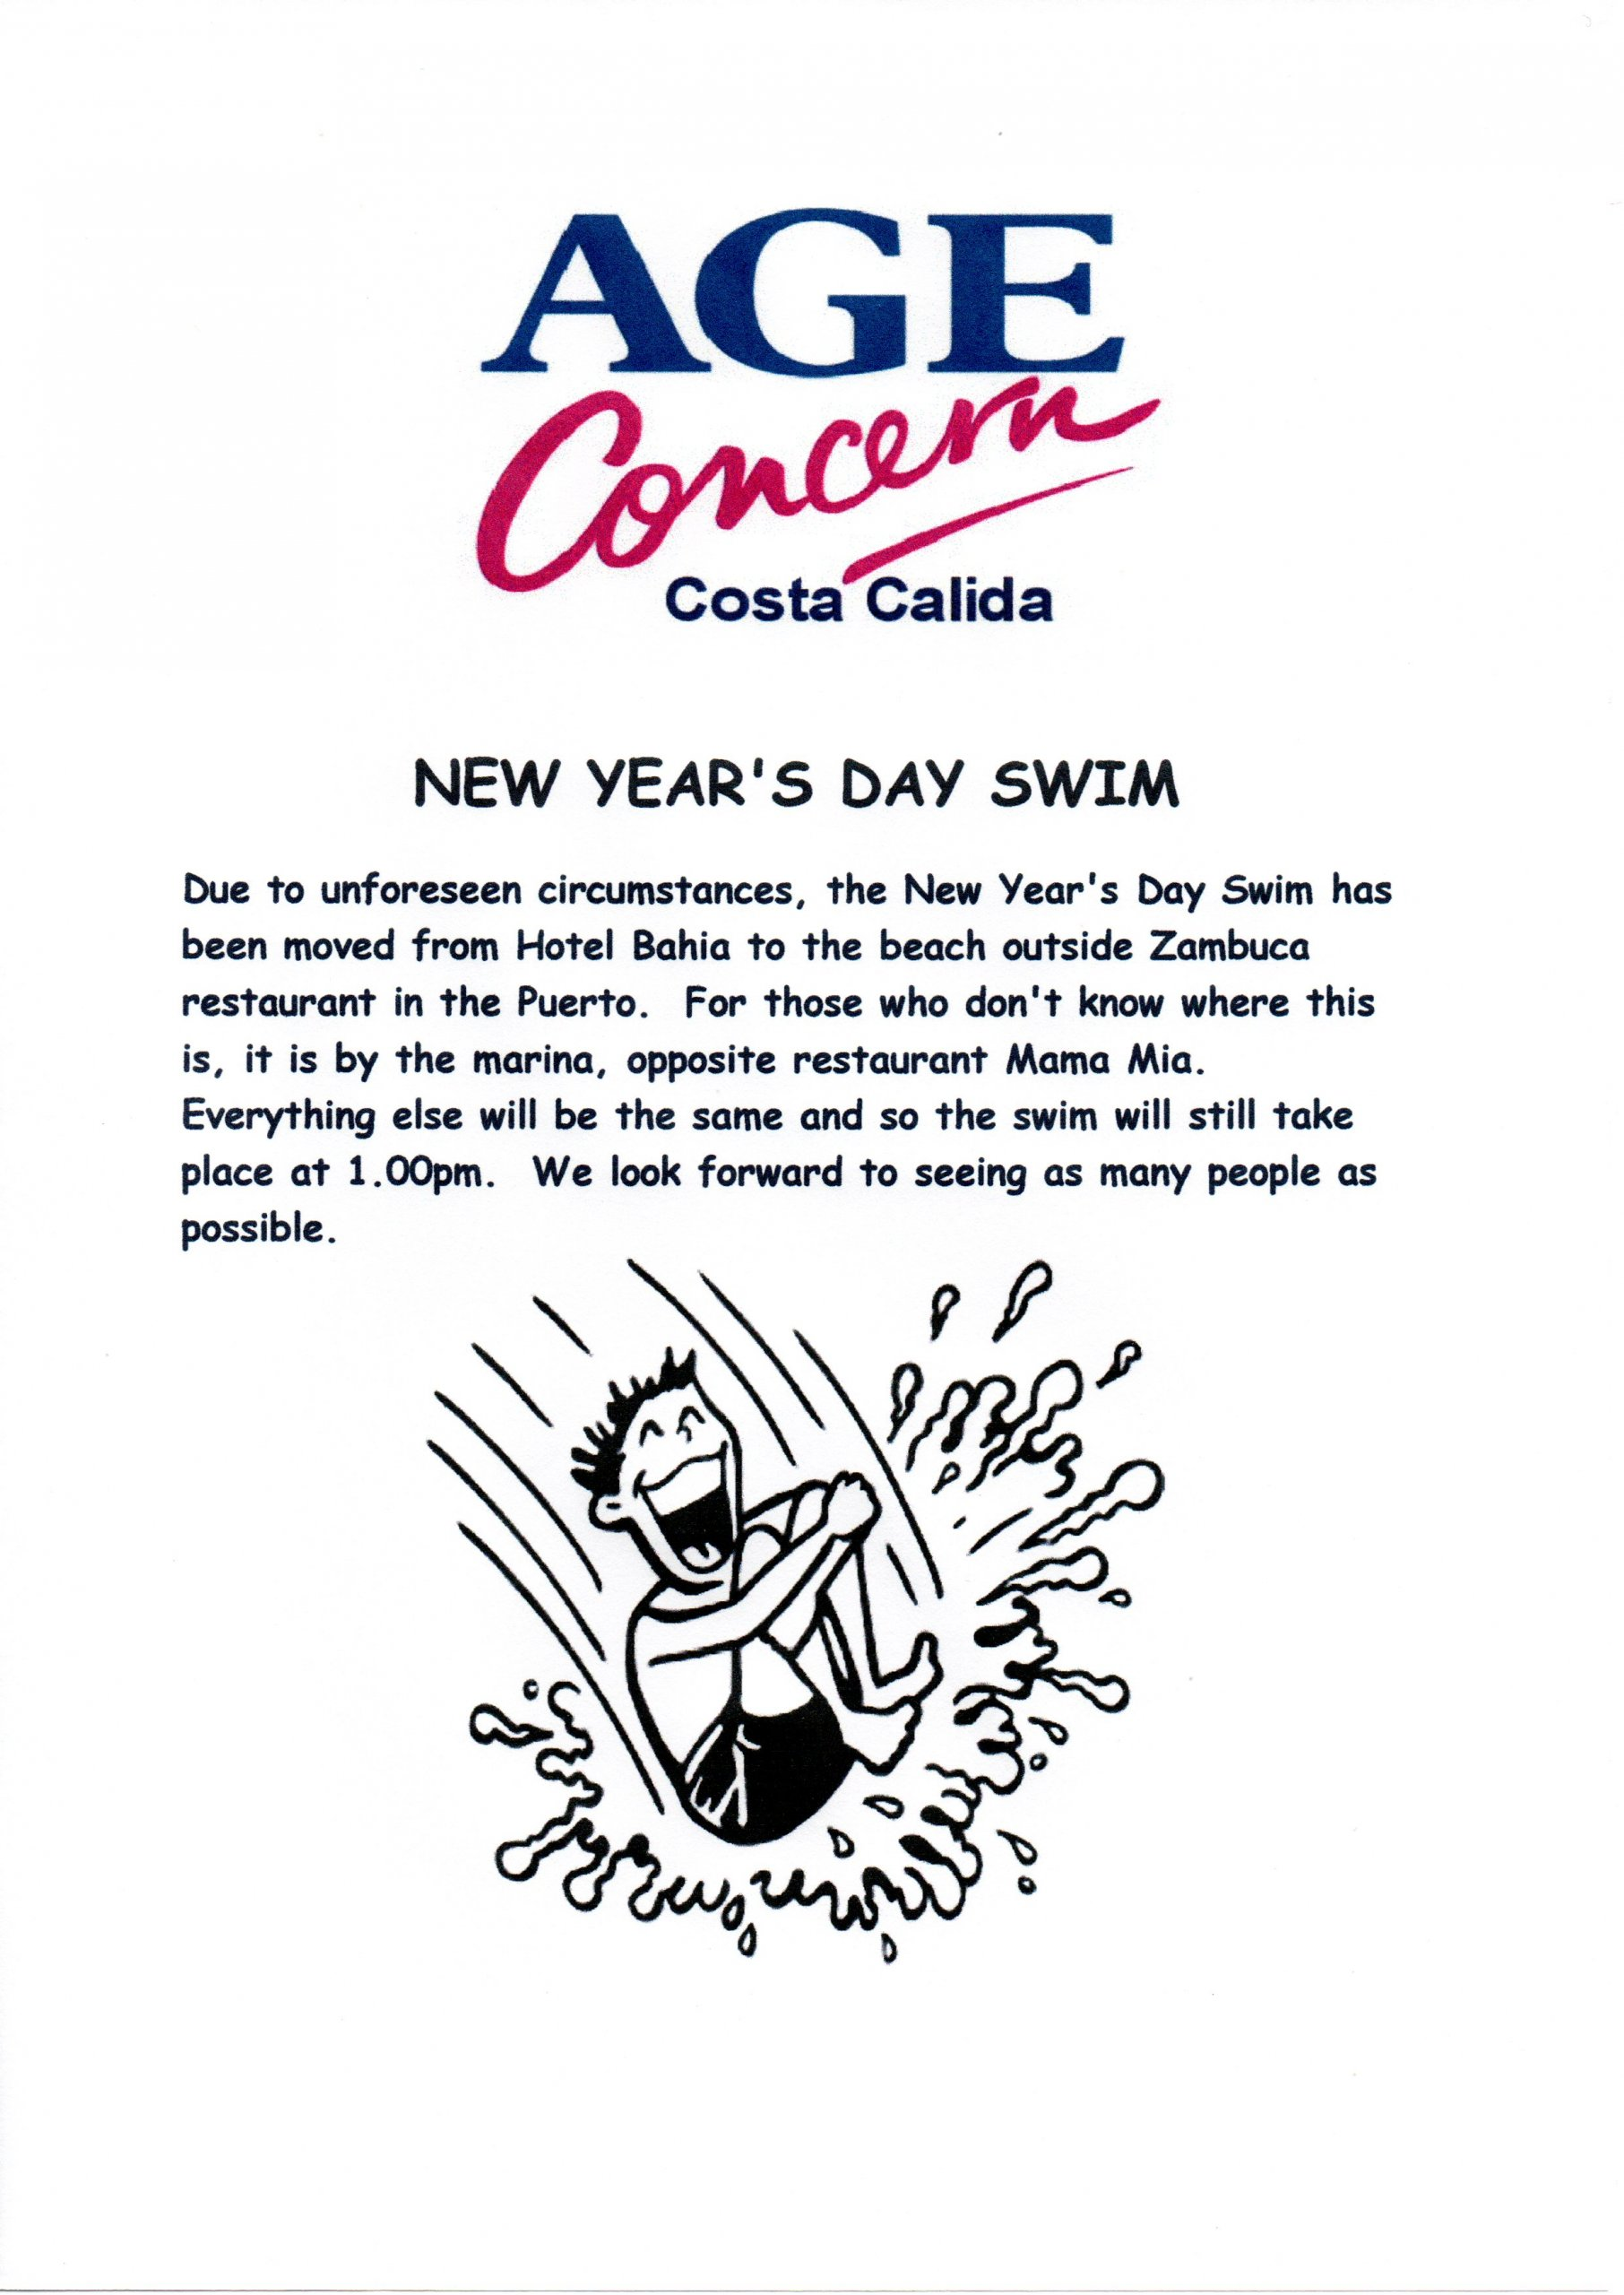 PLEASE NOTE CHANGE OF VENUE FOR AGE CONCERN NEW YEAR'S DAY SWIM!